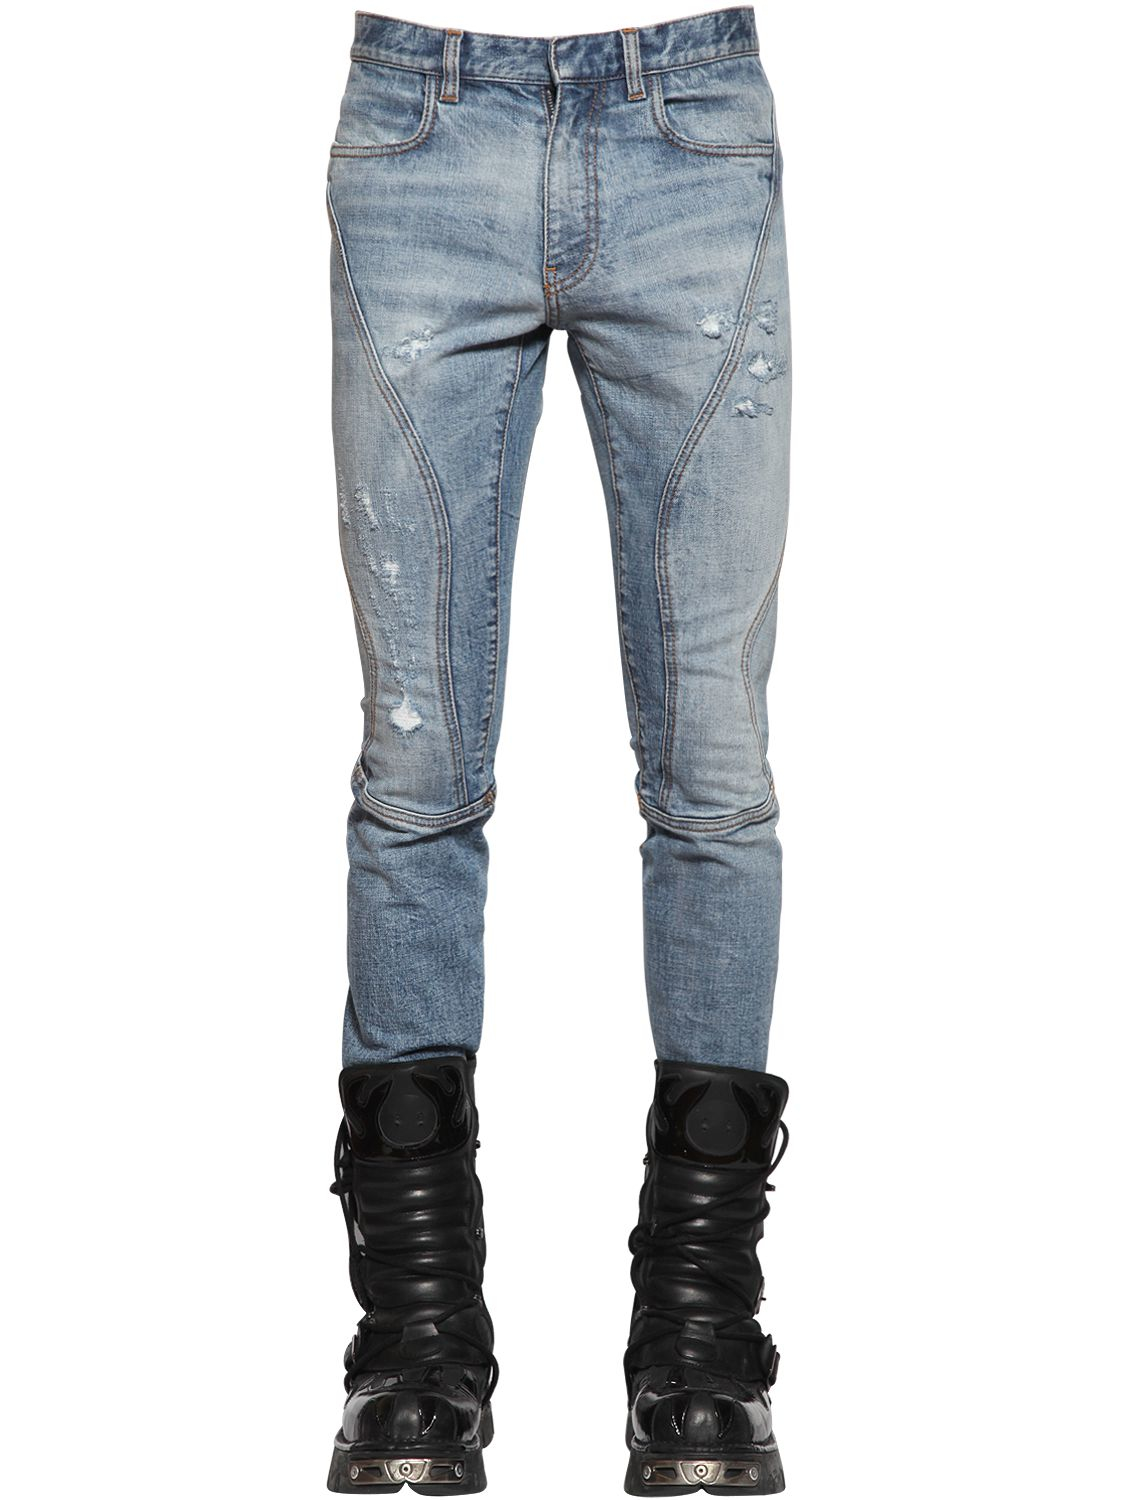 At Jimmy Jazz we carry a wide selection of men's jeans for the latest styles like biker jeans, including brands like True Religion, Levi's and Embellish.